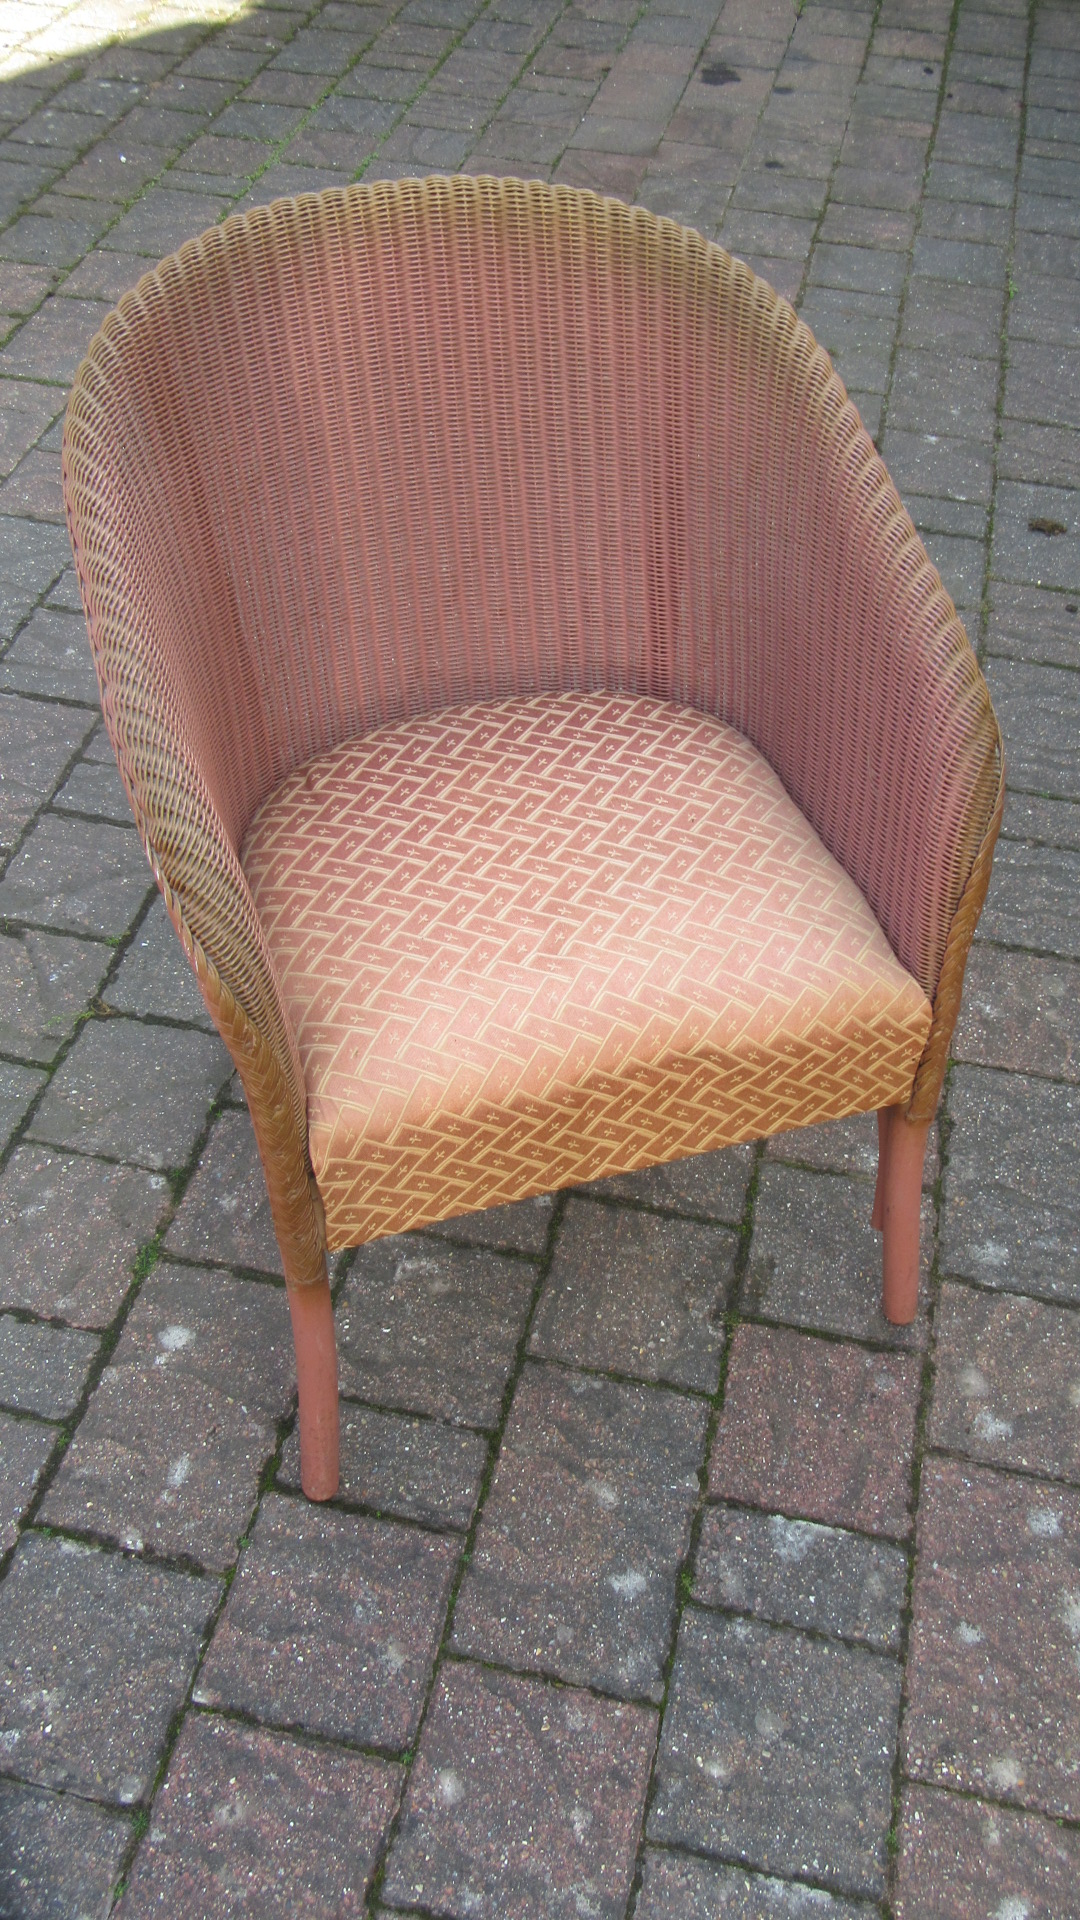 VINTAGE 1930S LLOYD LOOM CHAIR